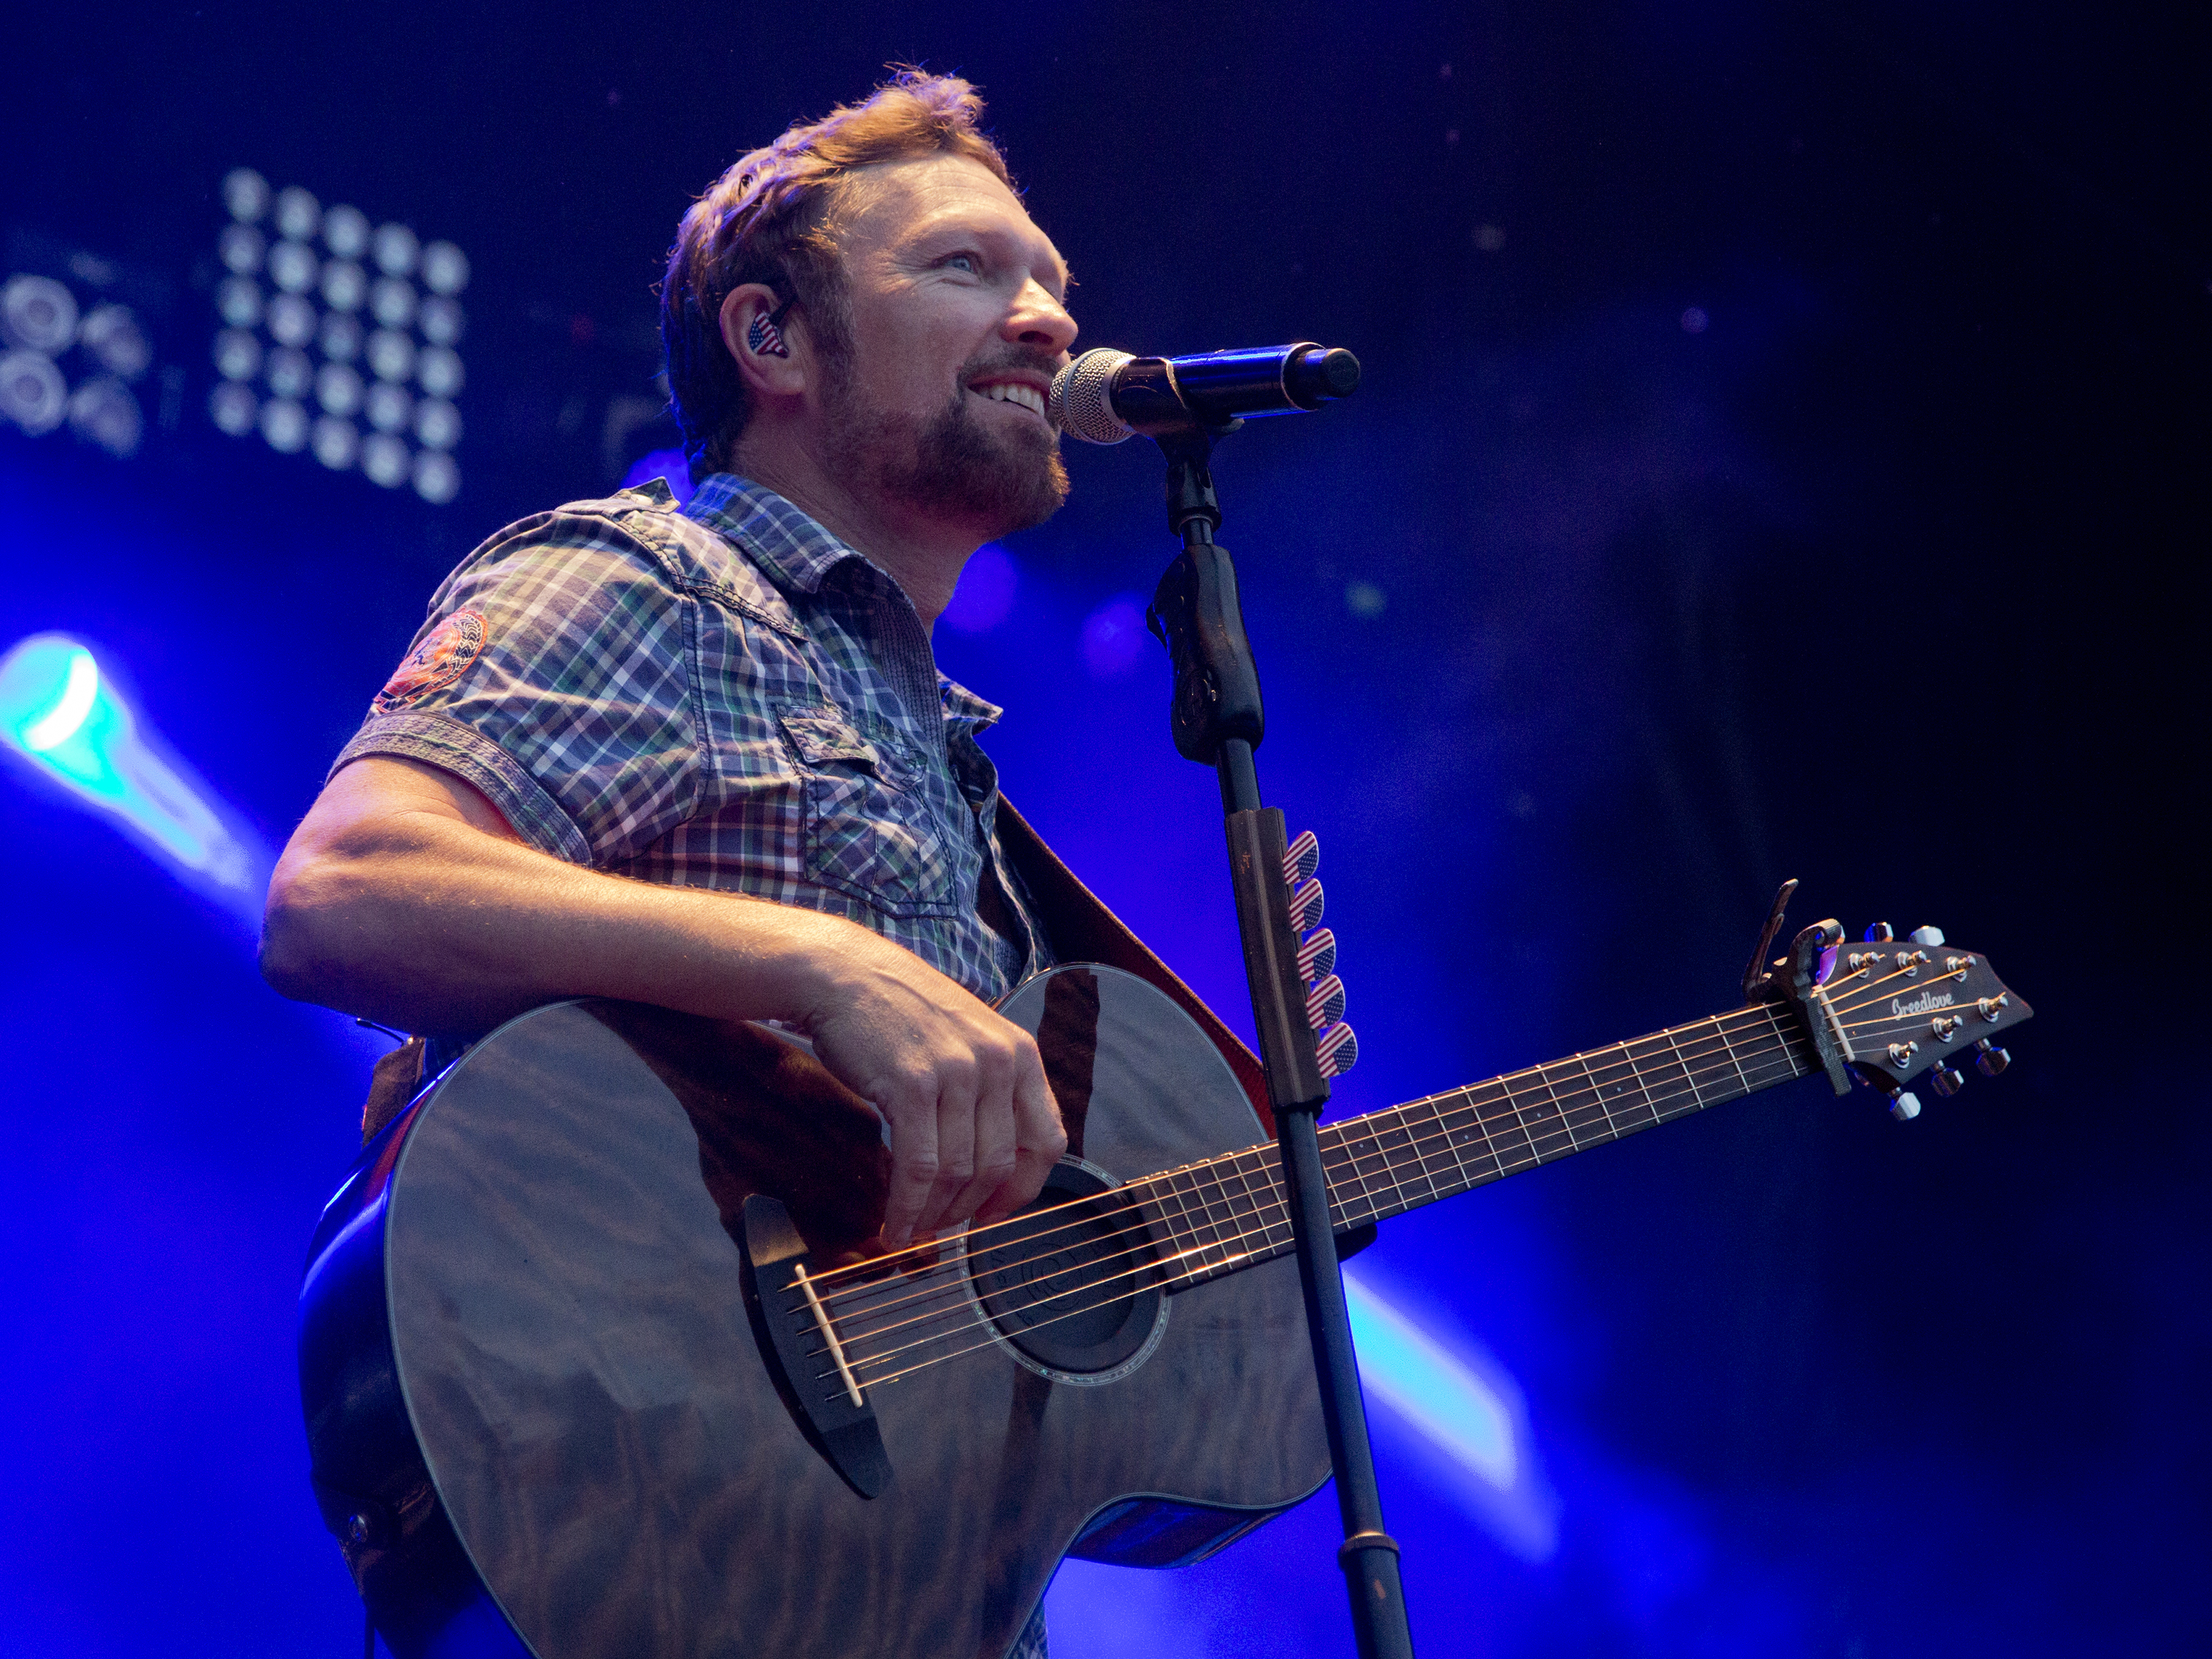 Picture of Craig Morgan playing guitar facing right. Picture from concert appearance.